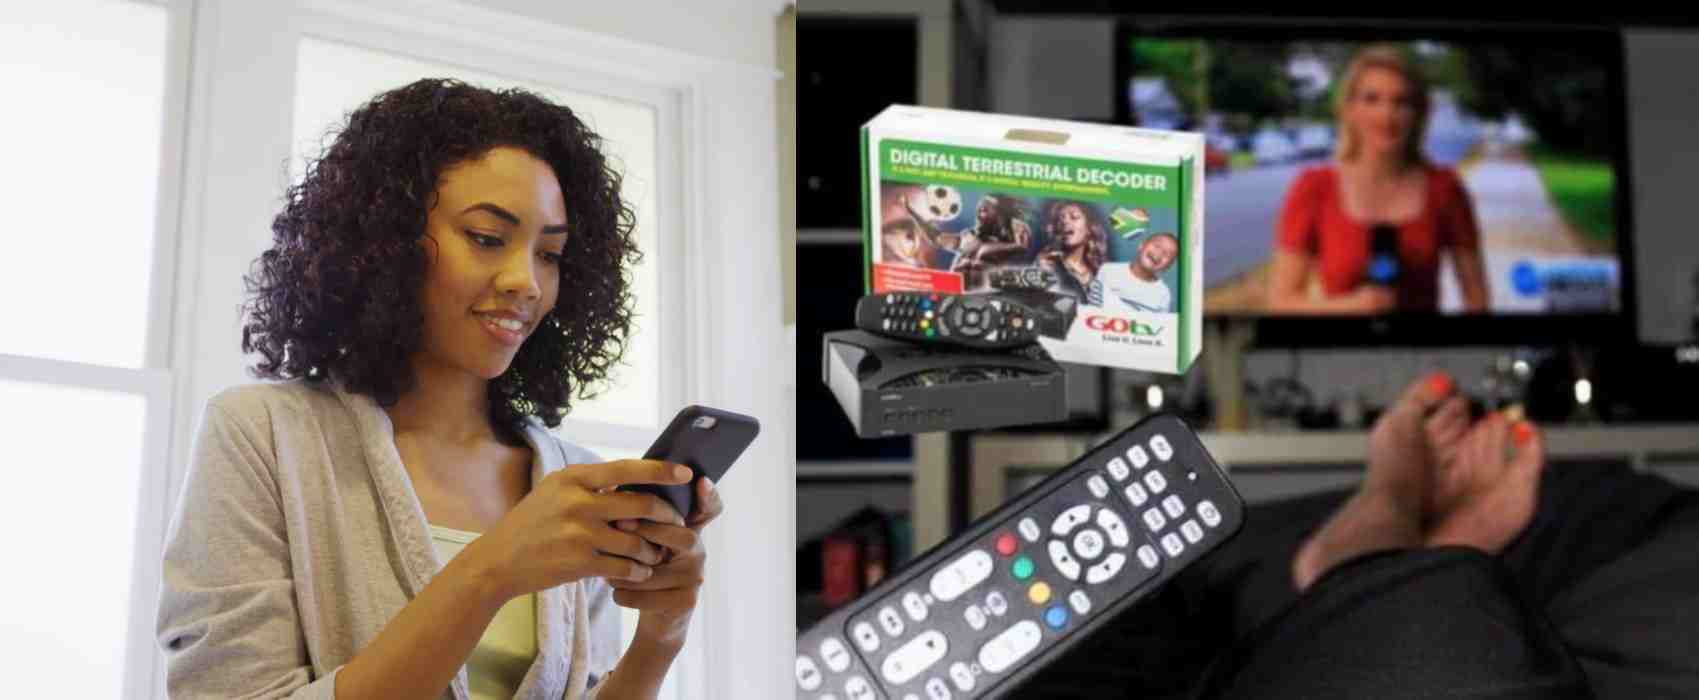 How To Pay For Gotv via Mpesa In Kenya